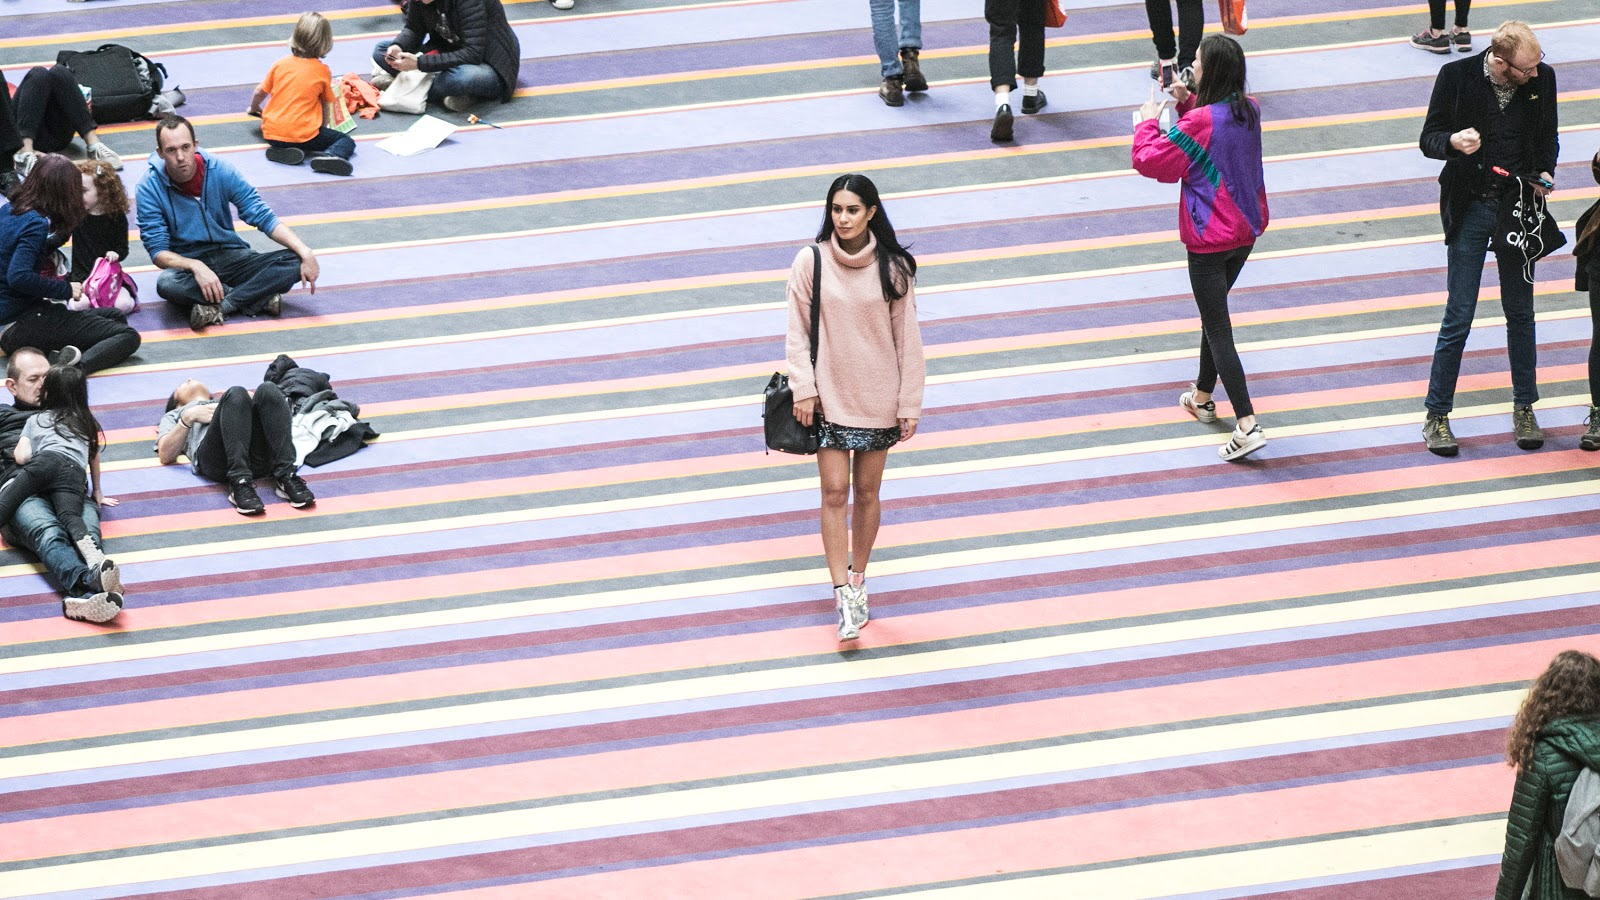 Fashion Blogger Reena Rai discusses the importance of representation for British Asian women